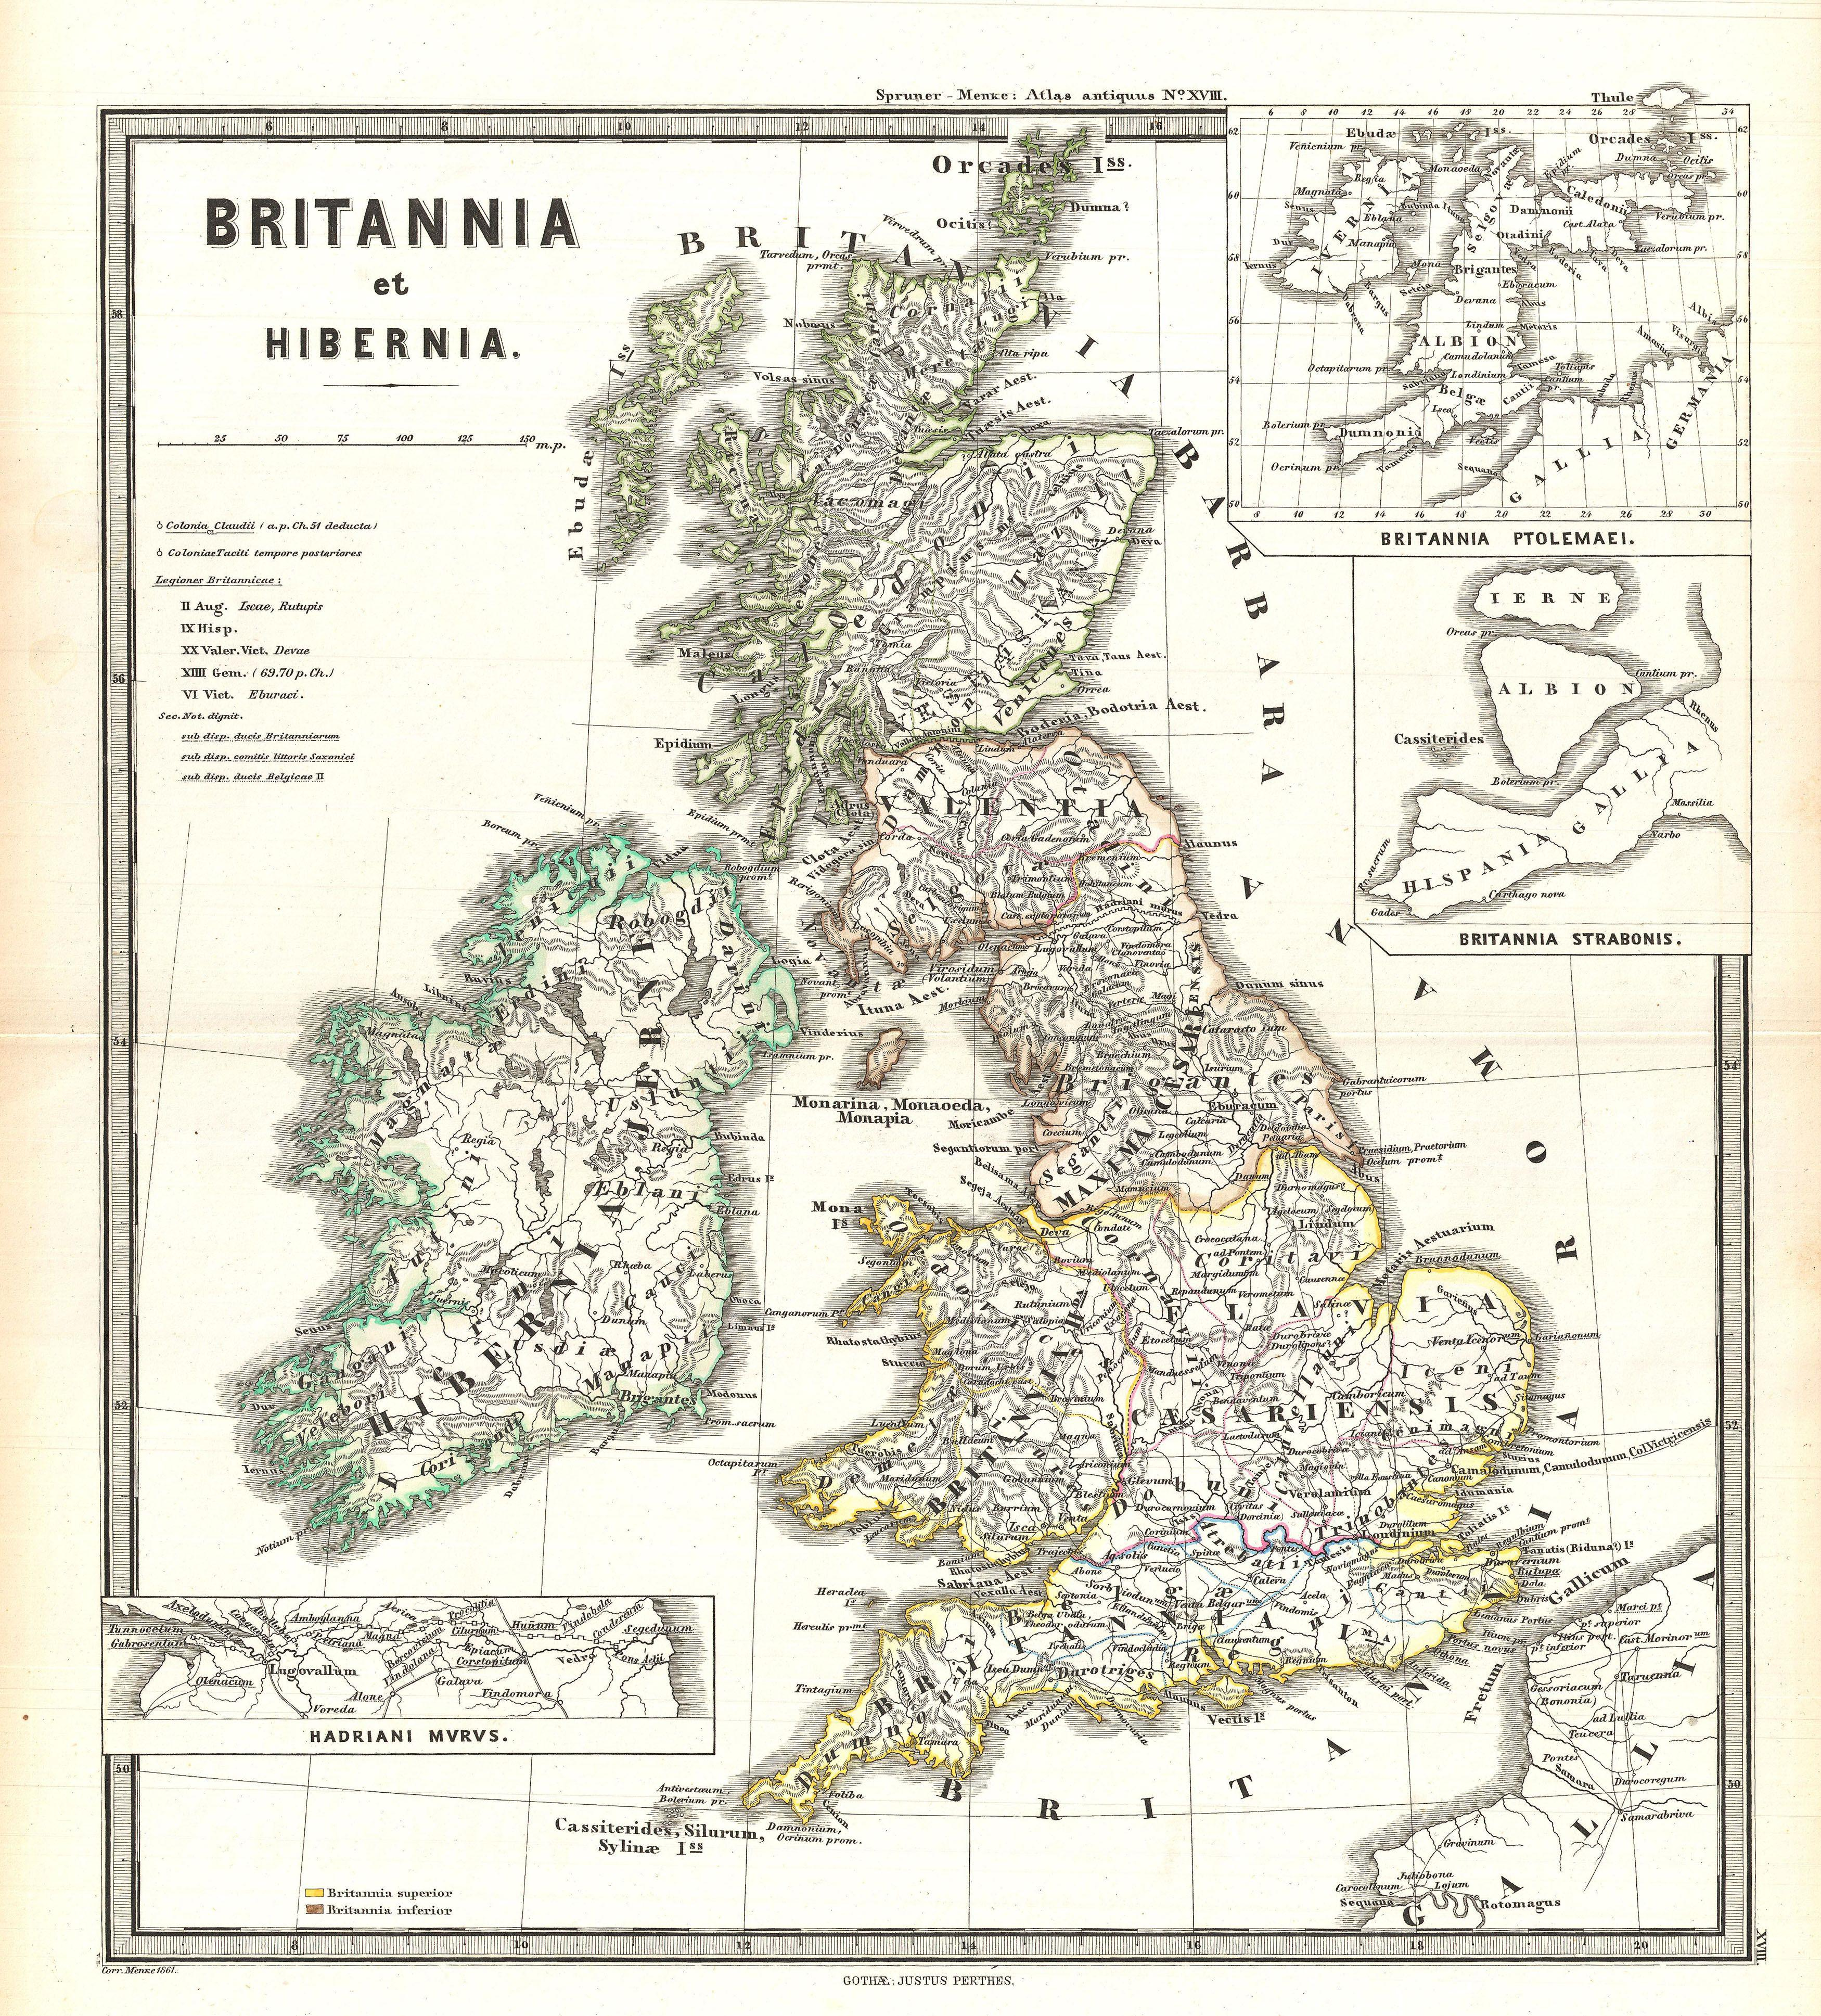 File:1865 Spruner Map of the British Isles (England